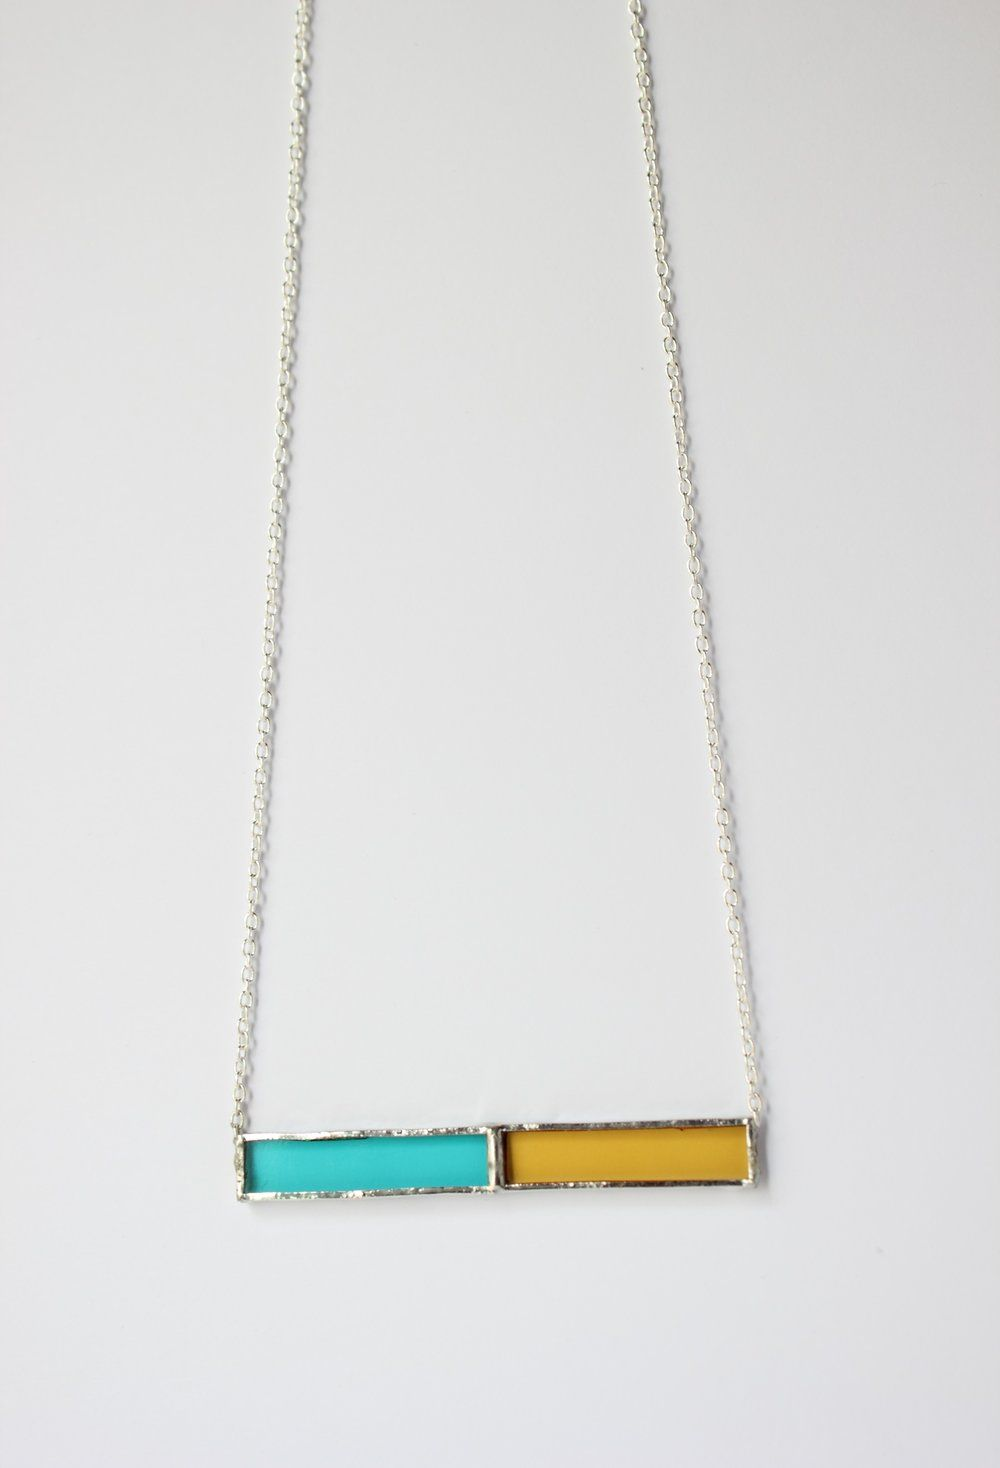 Teal & Yellow glass with nickle-free, sterling silver chain in a lead-free…